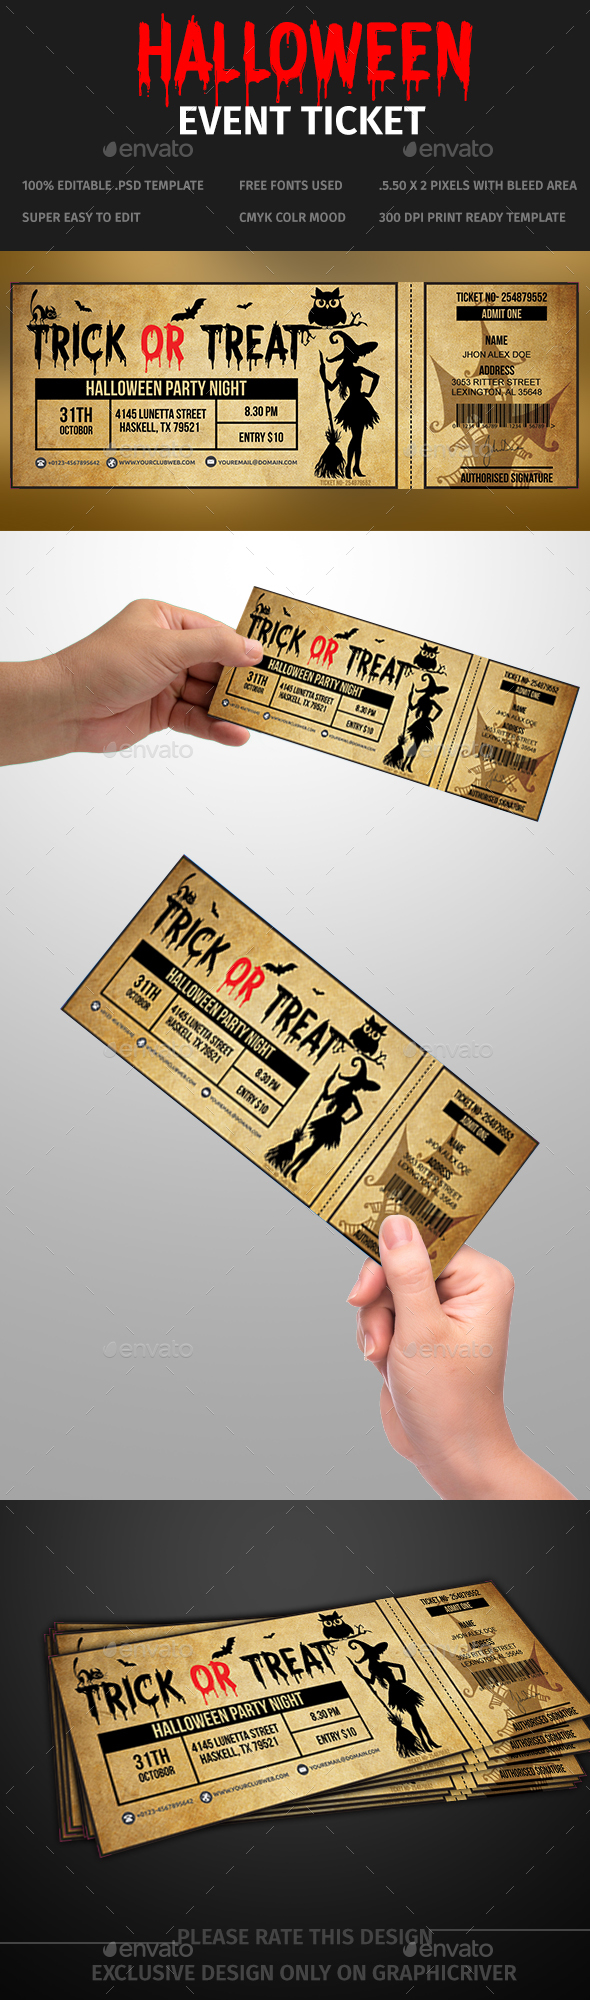 Halloween Event Ticket Template - Banners & Ads Web Elements